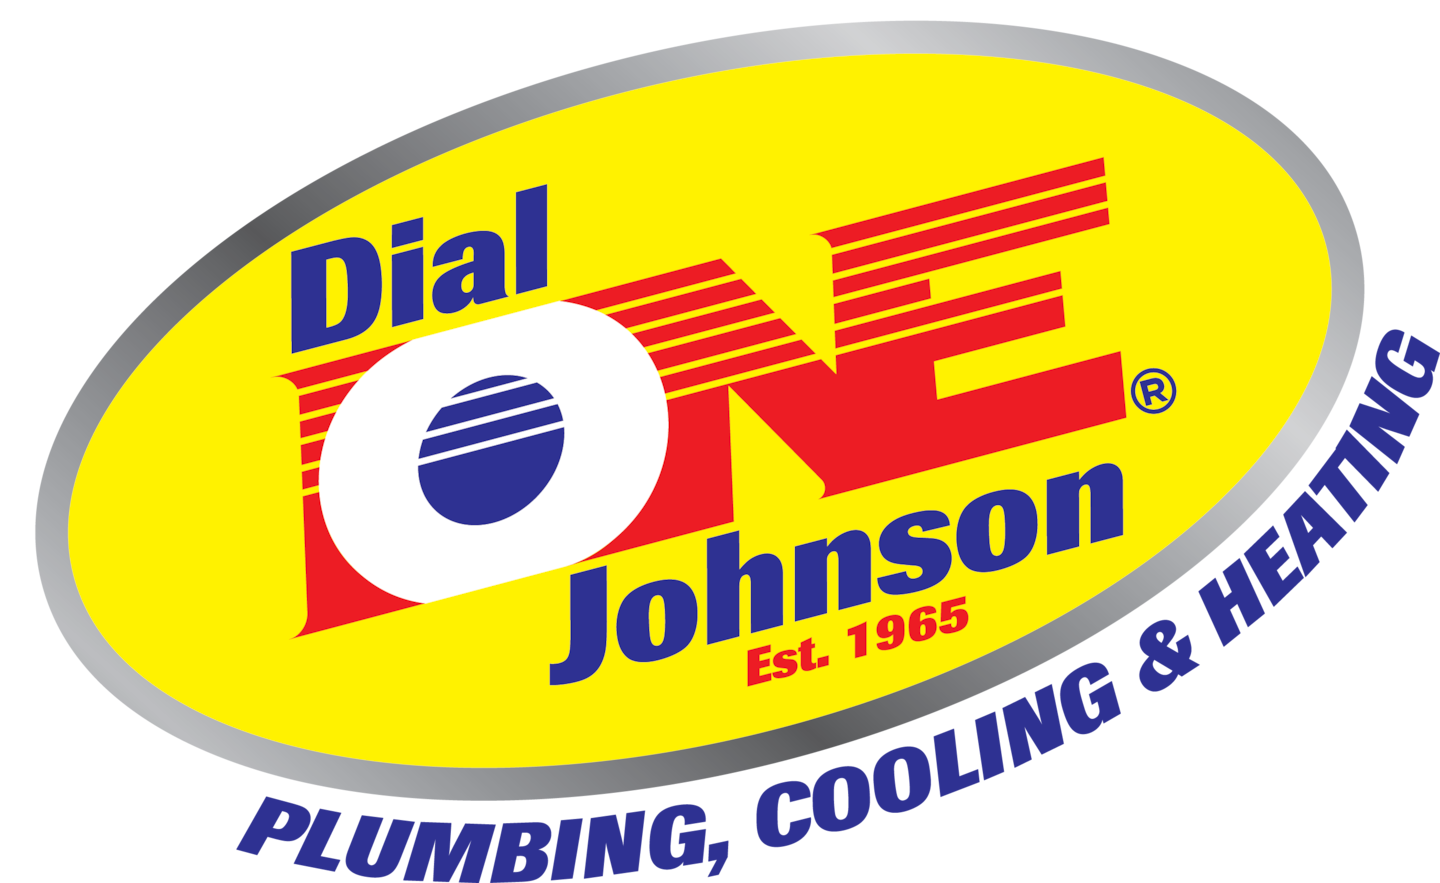 Dial One Johnson Plumbing, Cooling, and Heating logo